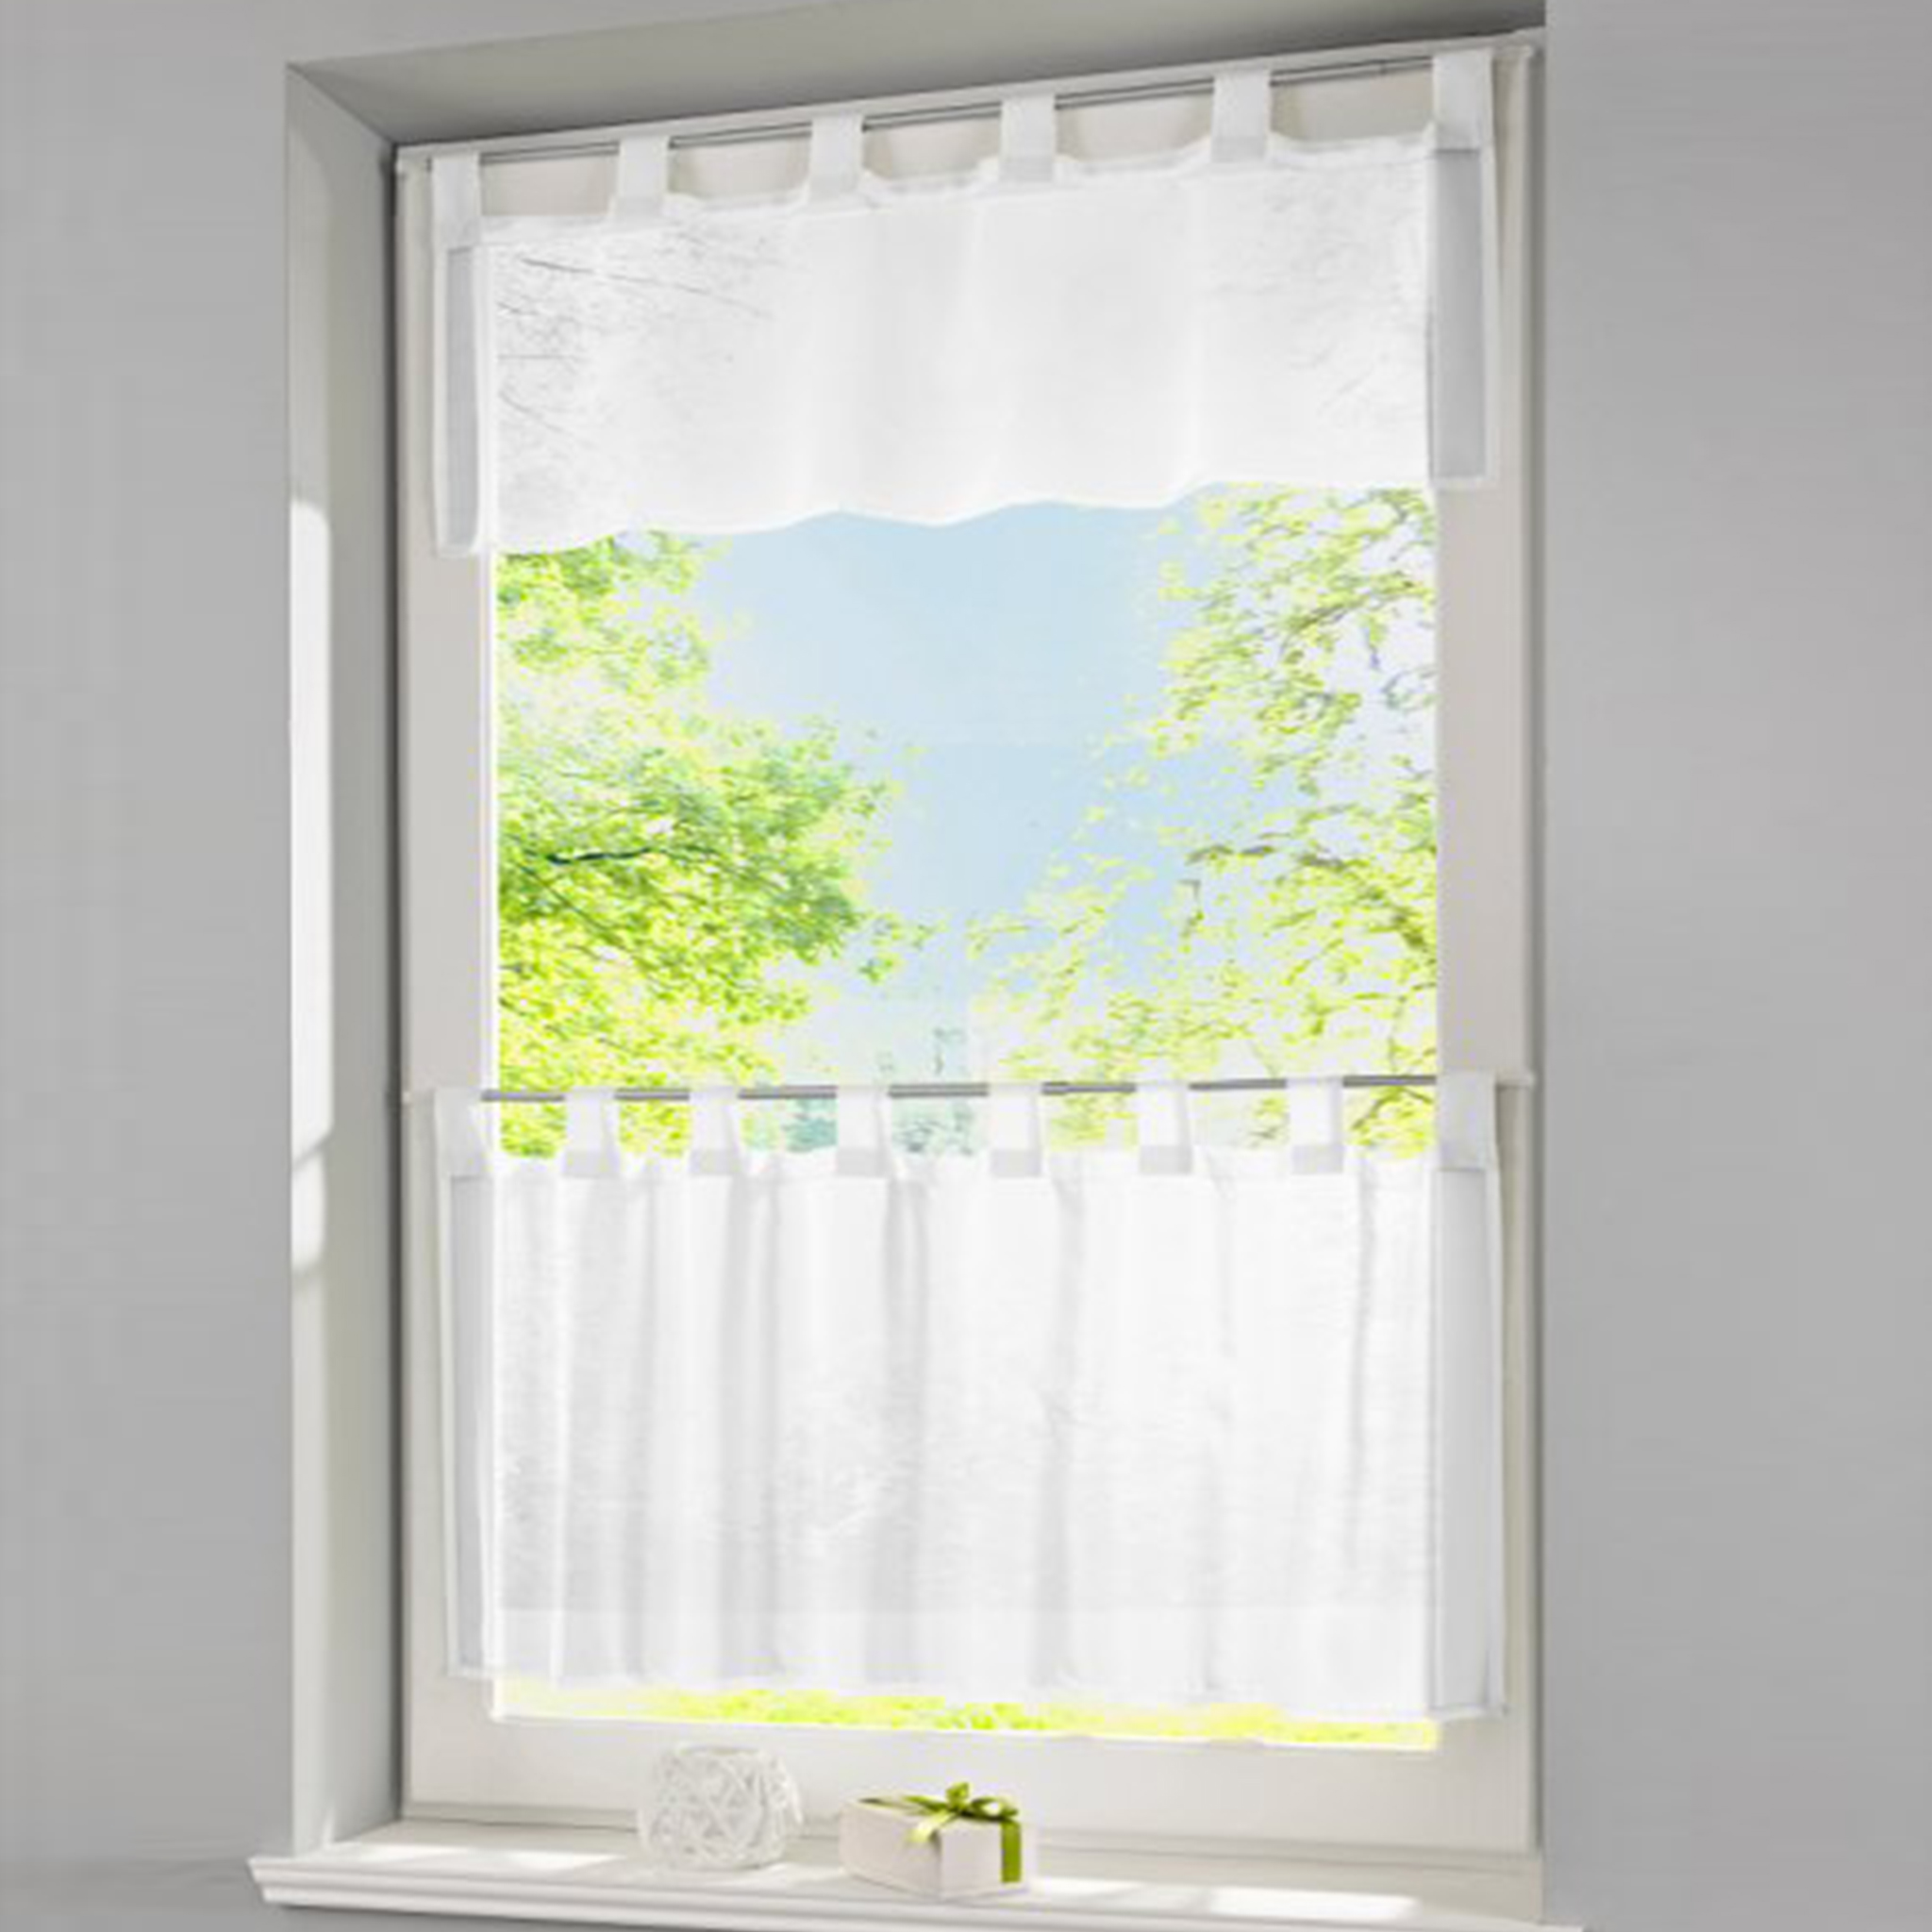 Popular tab valances buy cheap tab valances lots from for Best brand of paint for kitchen cabinets with blackout window stickers